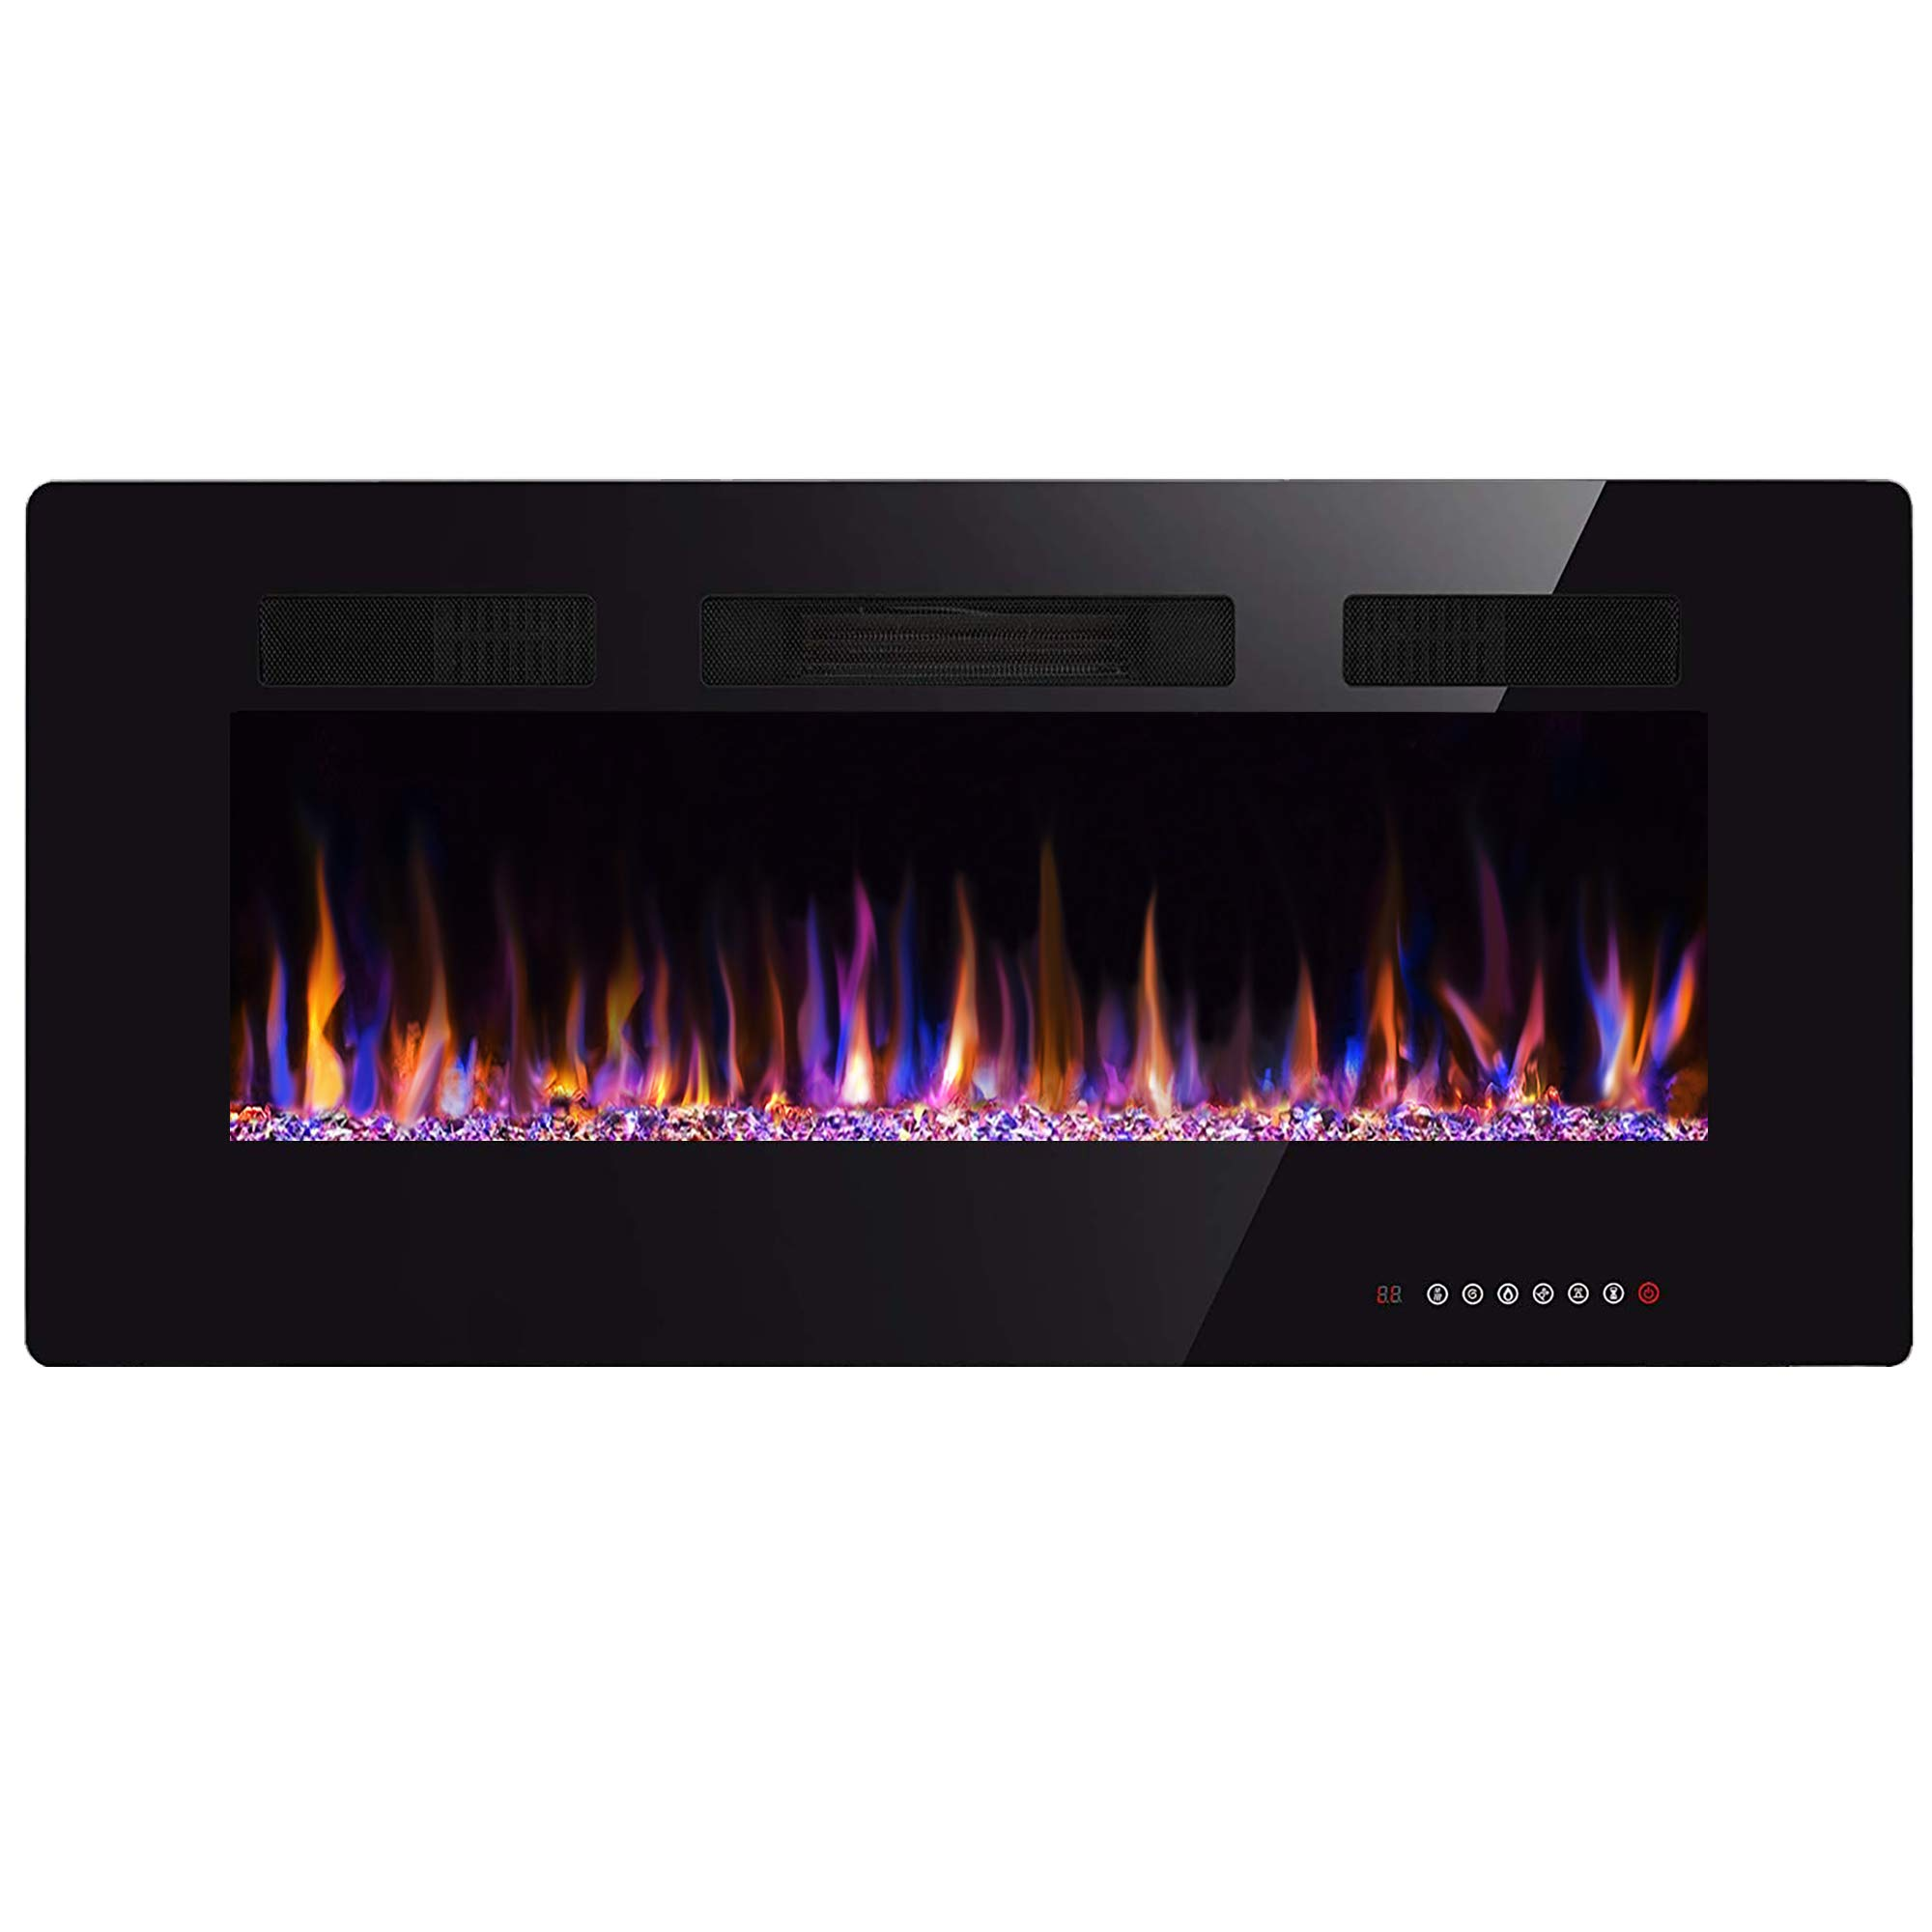 Xbeauty 36'' Electric Fireplace in-Wall Recessed and Wall Mounted 1500W Fireplace Heater and Linear Fireplace with Timer/Multicolor Flames/Touch Screen/Remote Control Black